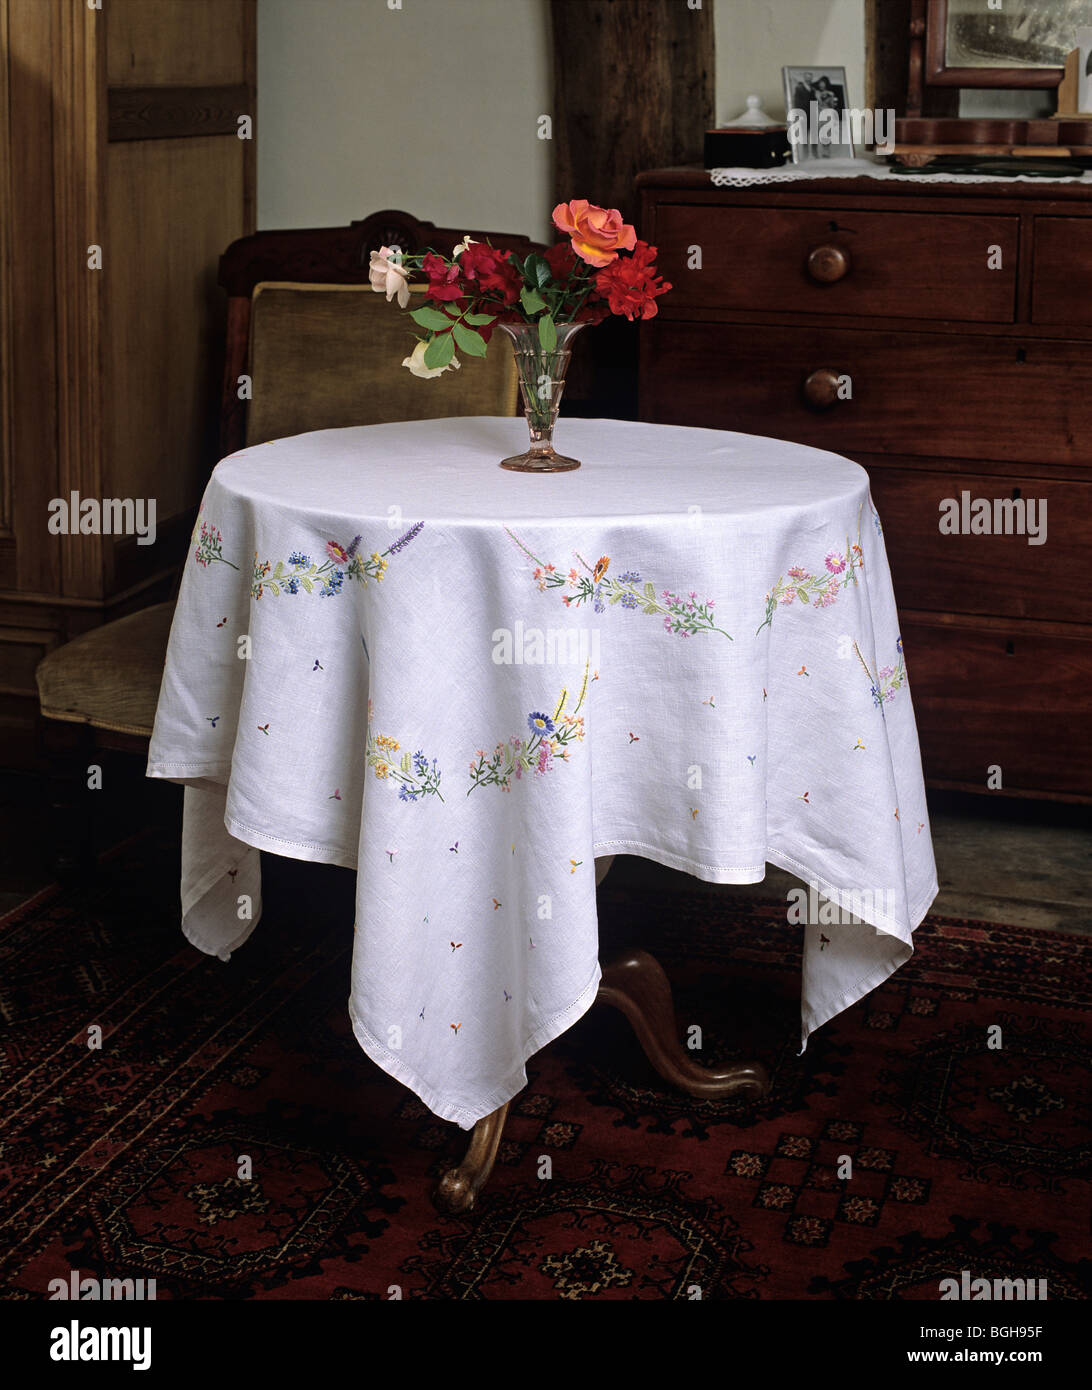 Small Round Table With Embroidered Victorian Tablecloth Stock